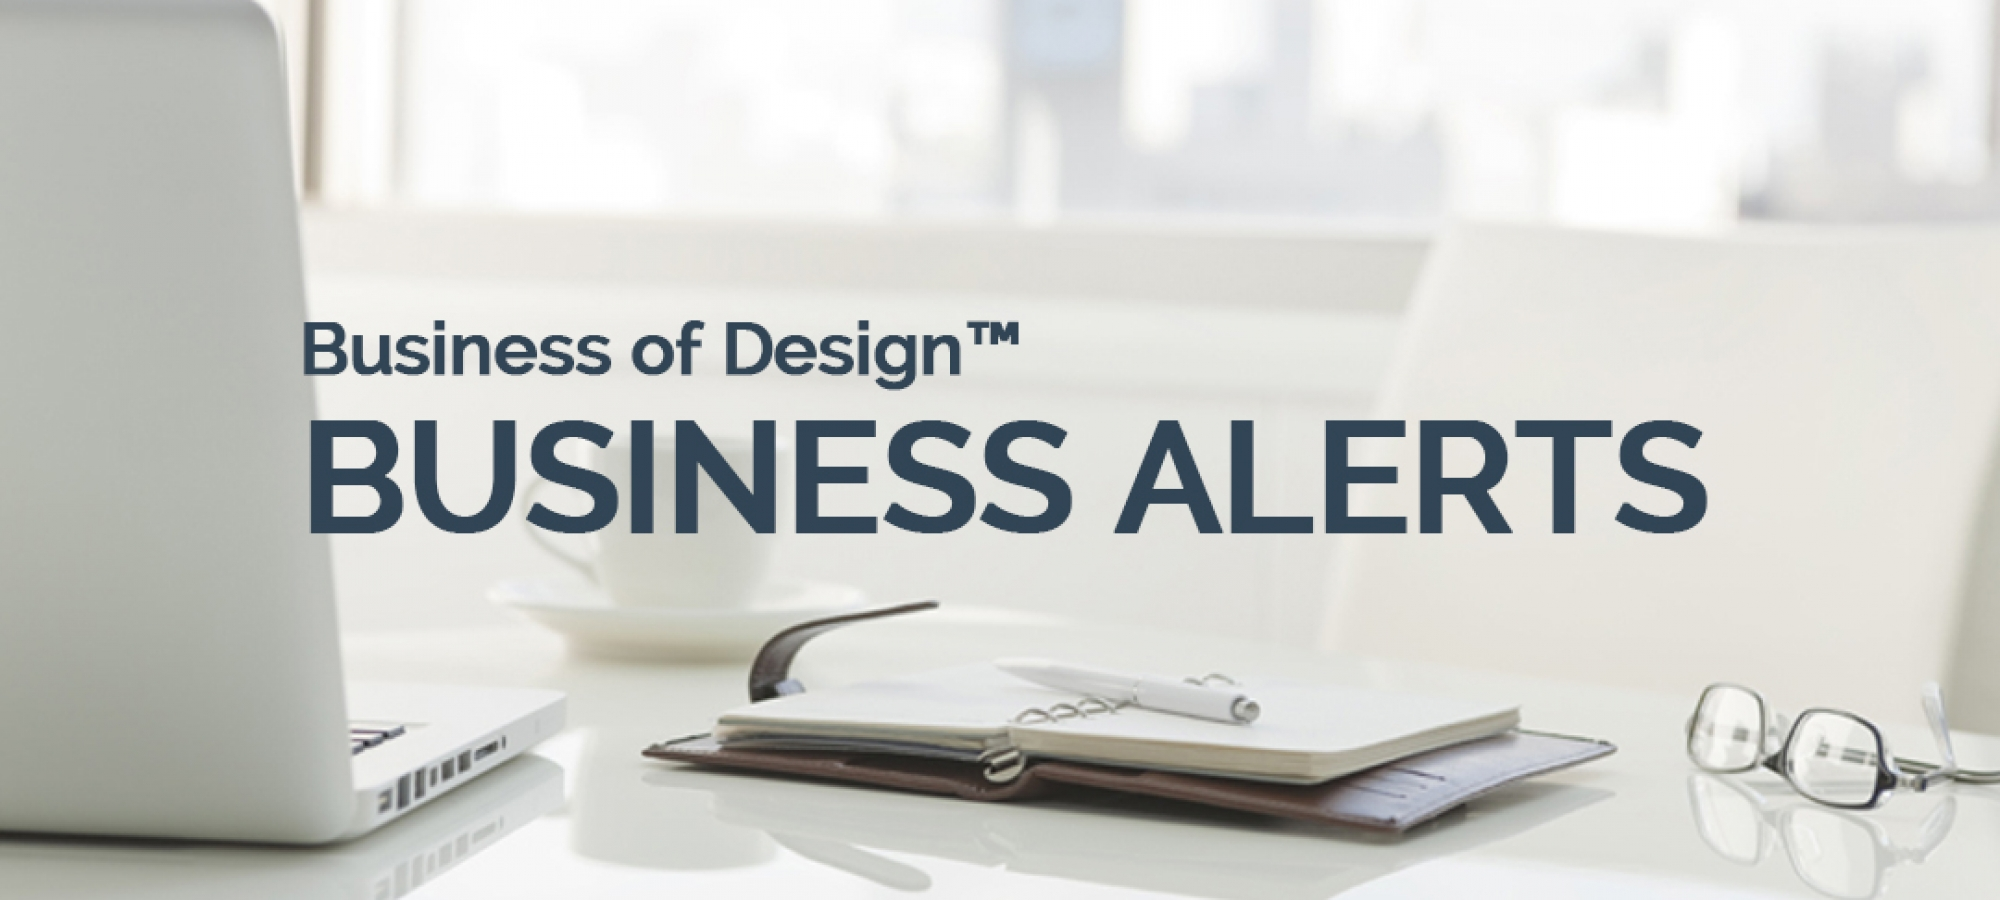 BOD™ Business Alerts